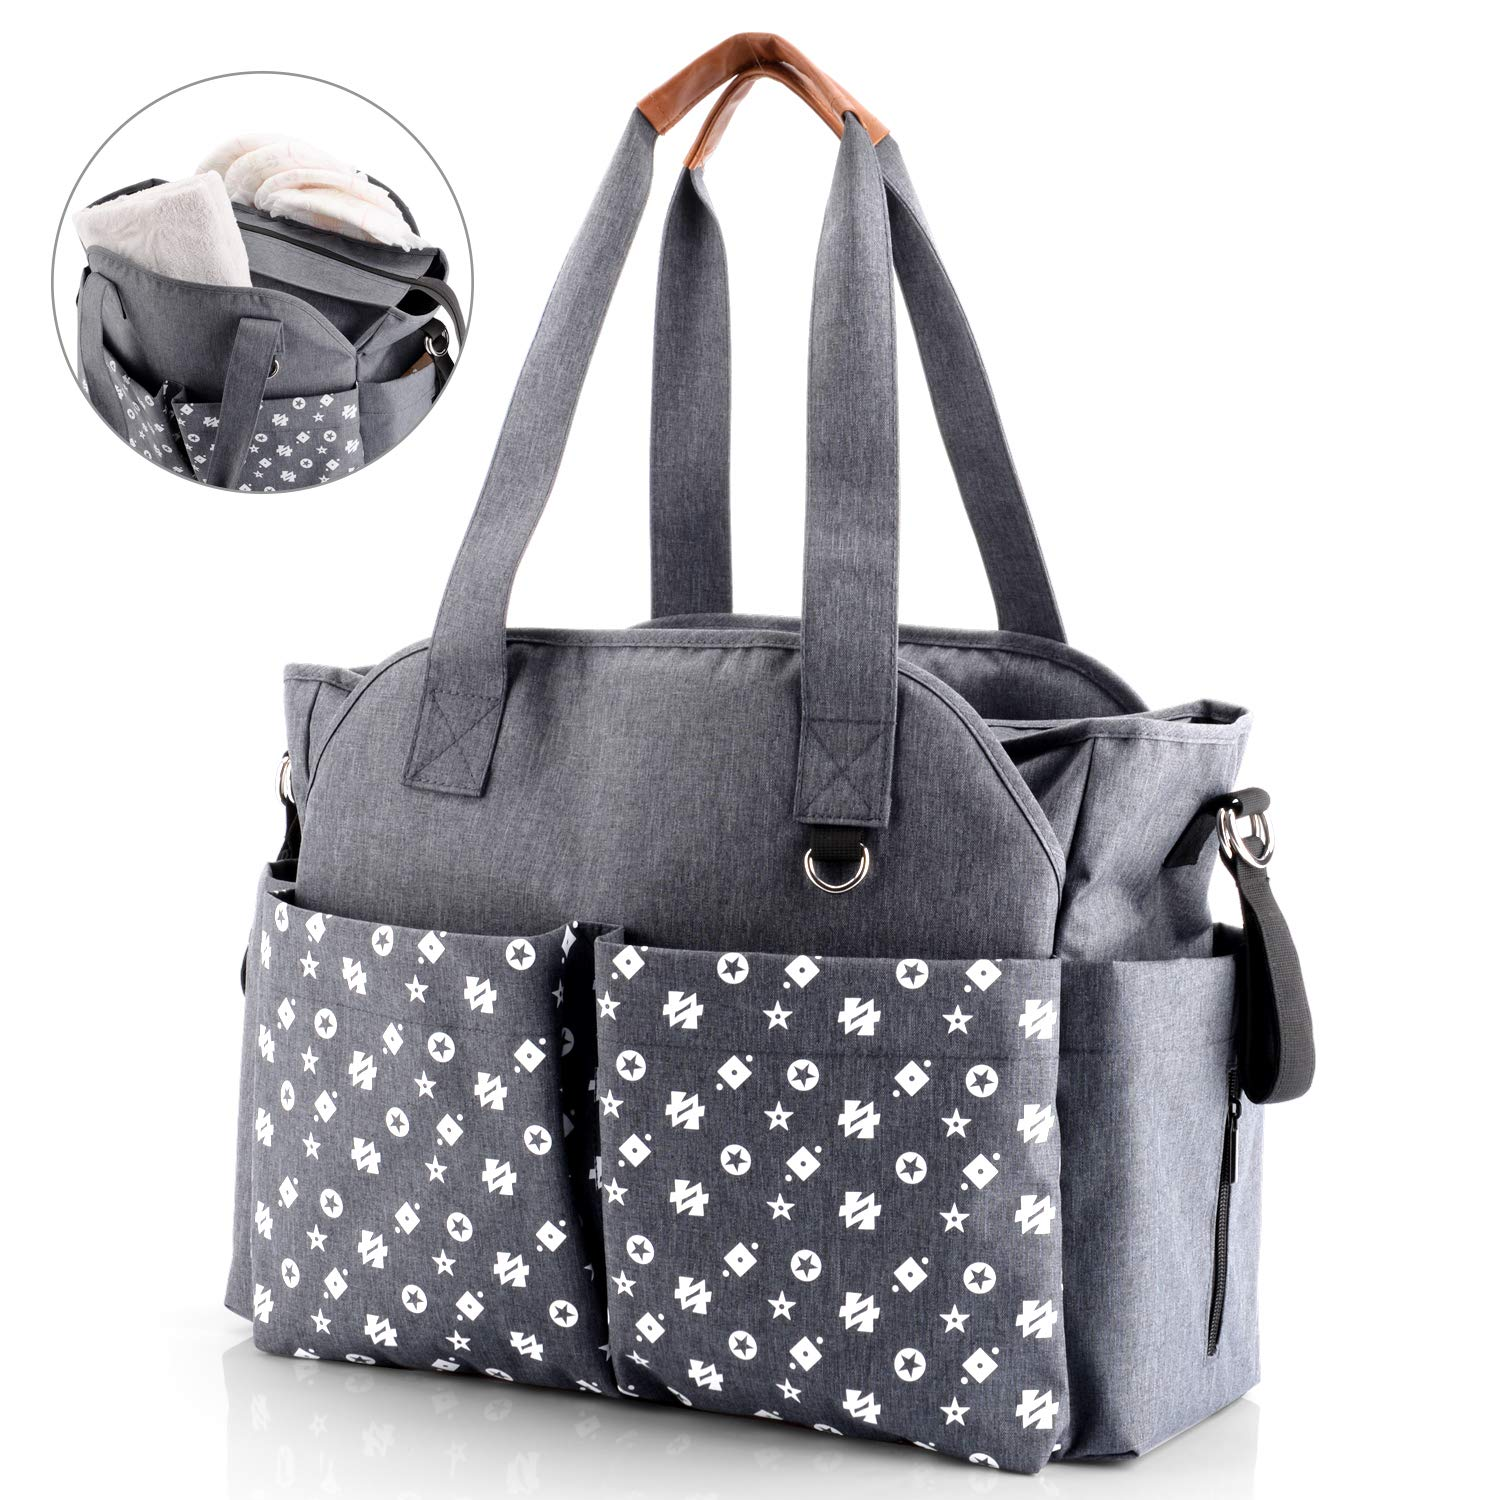 GFCGFGDRG Waterproof Clothes Wet Dry Diaper Bags Reusable Nappy Pouches with 2 Zippered Pockets Printed Storage Organizer Sacks